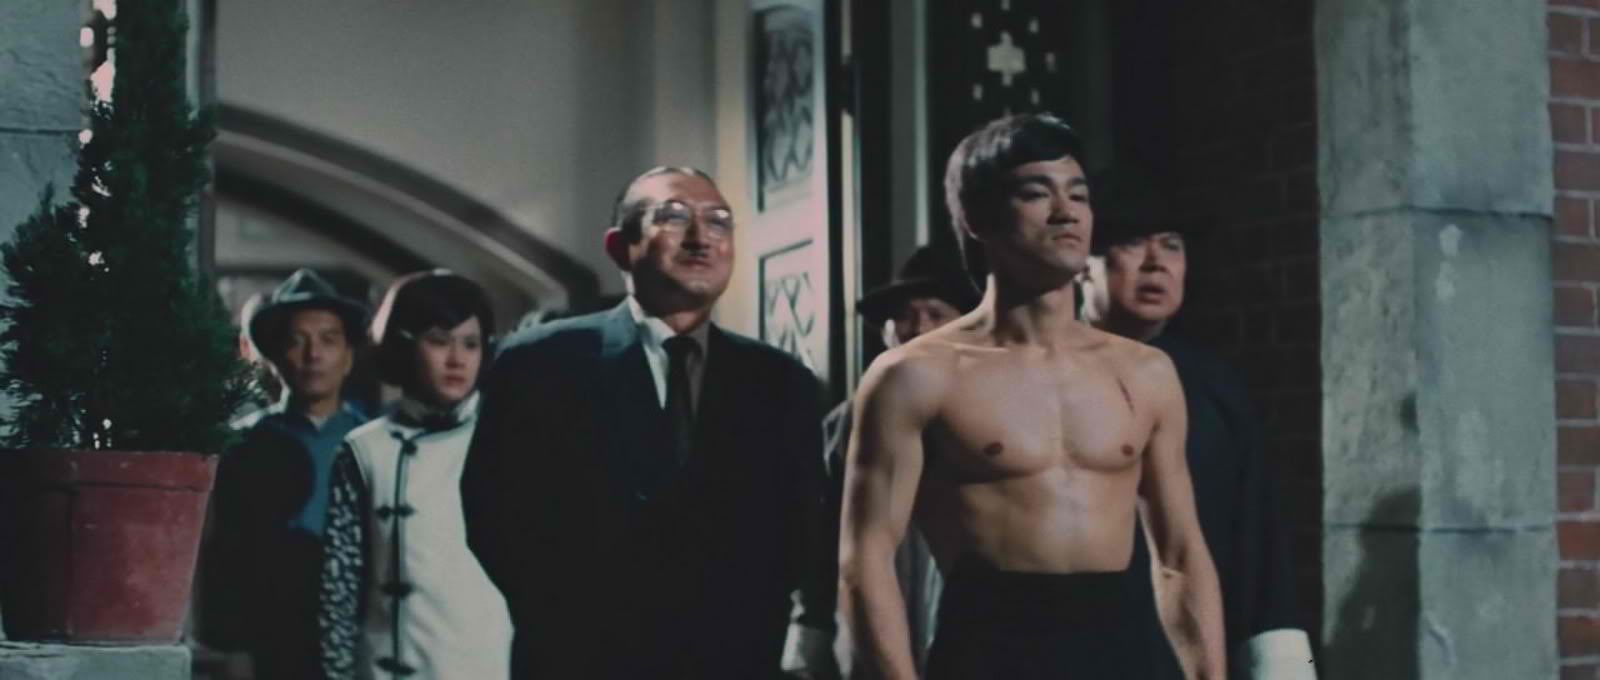 Film fist of fury